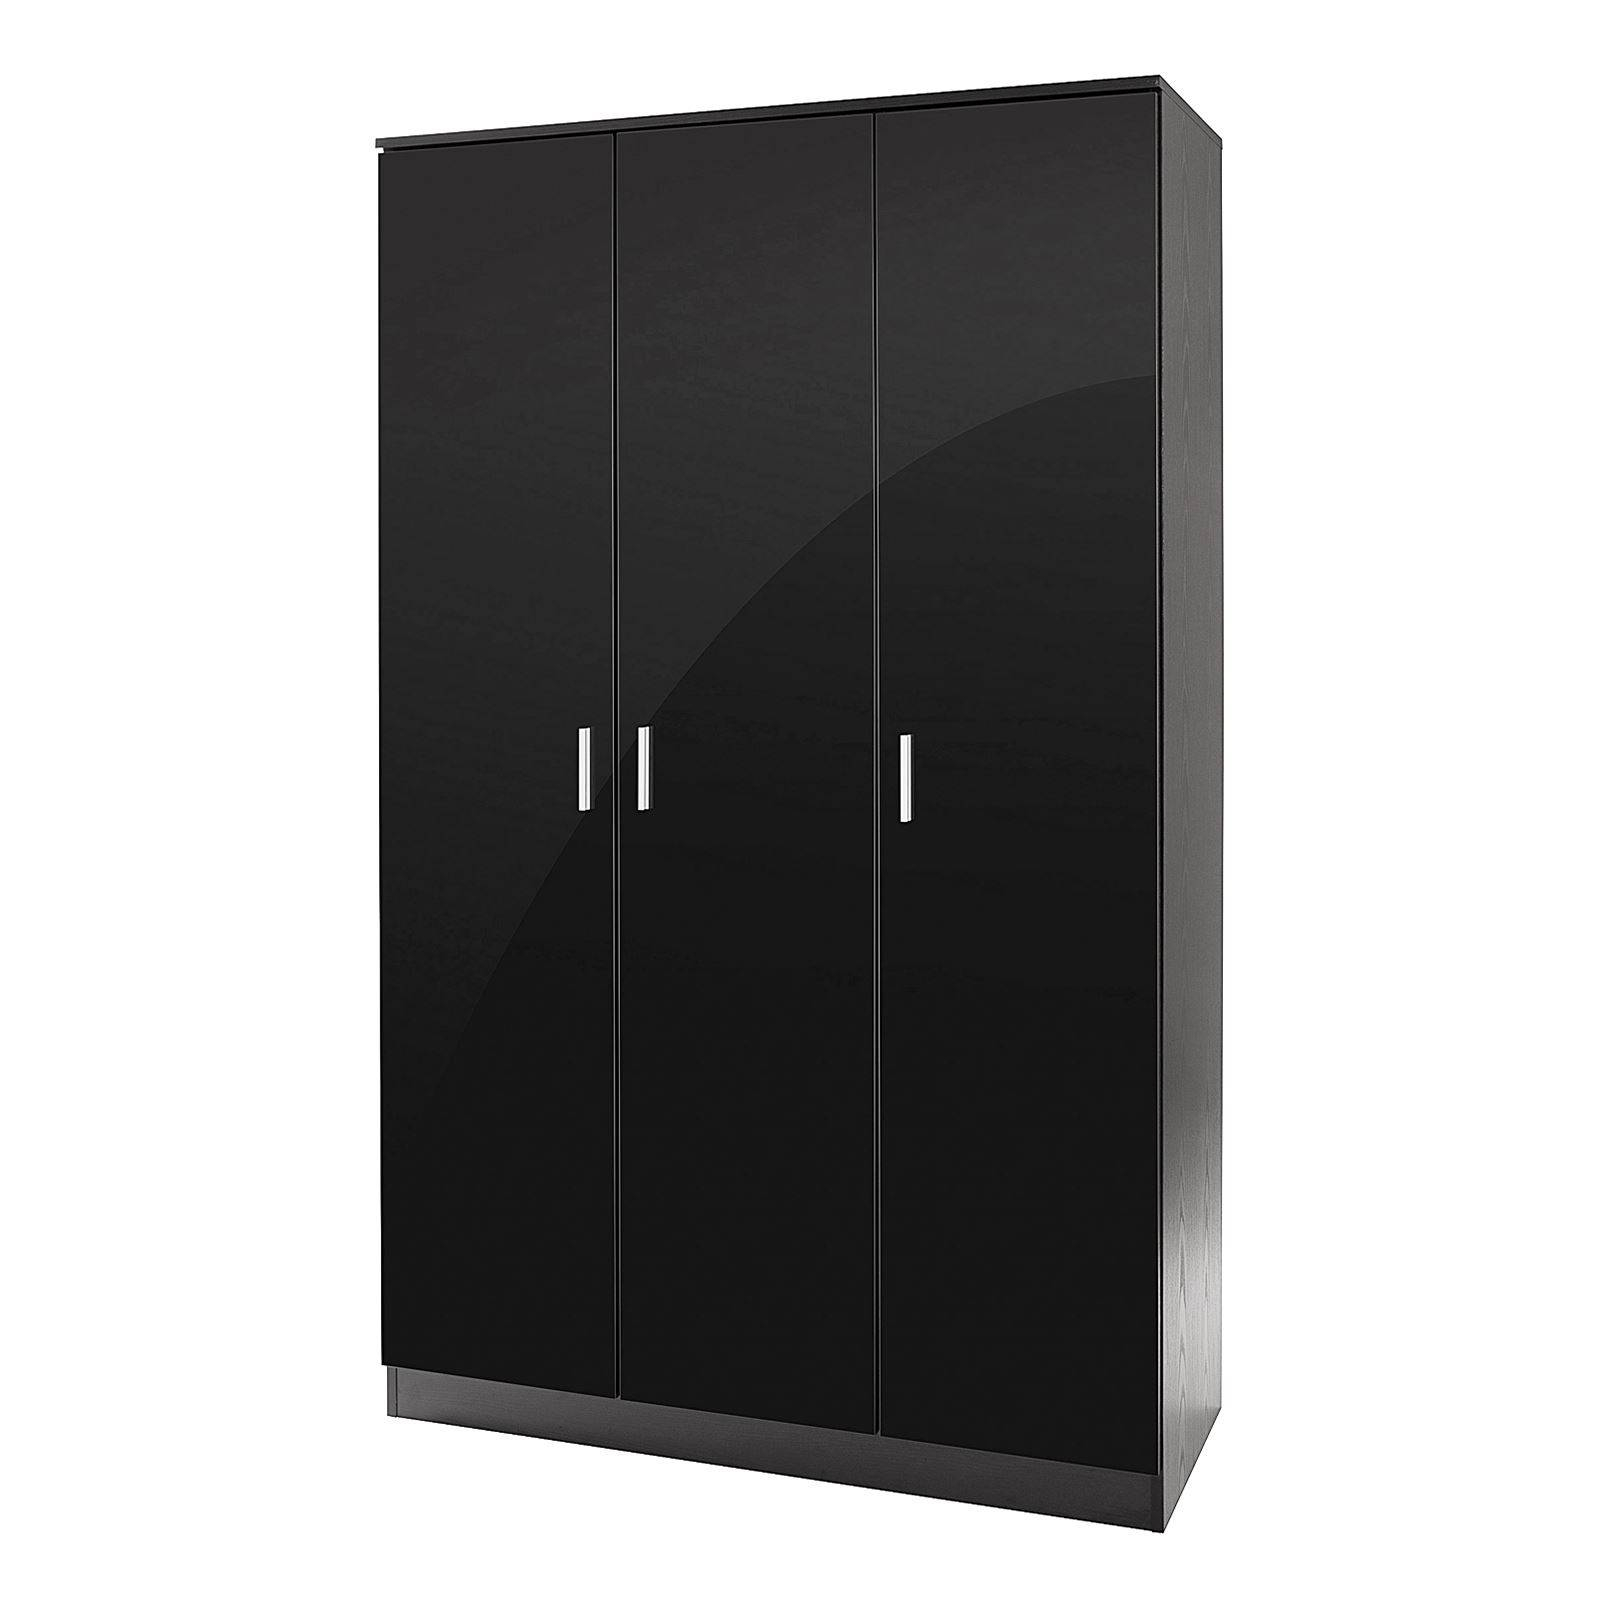 Bedroom Furniture 3 Piece Set Black Gloss Wardrobe Drawer Bedside pertaining to 3 Door Black Gloss Wardrobes (Image 3 of 15)